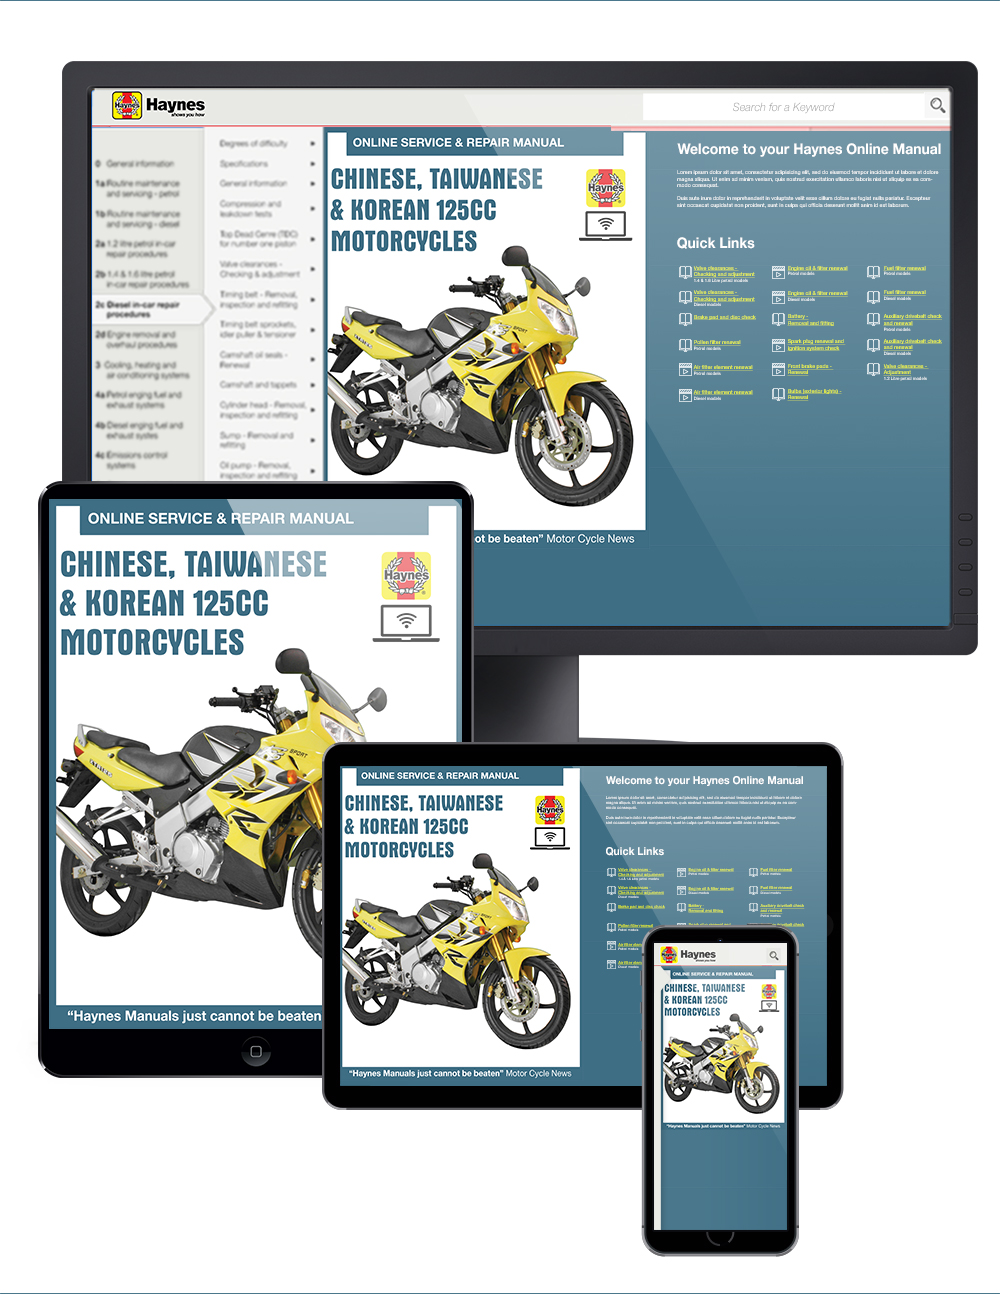 Manual cover for Chinese, Taiwanese & Korean 125cc Motorcycles (2003-2015) Haynes Online Manual